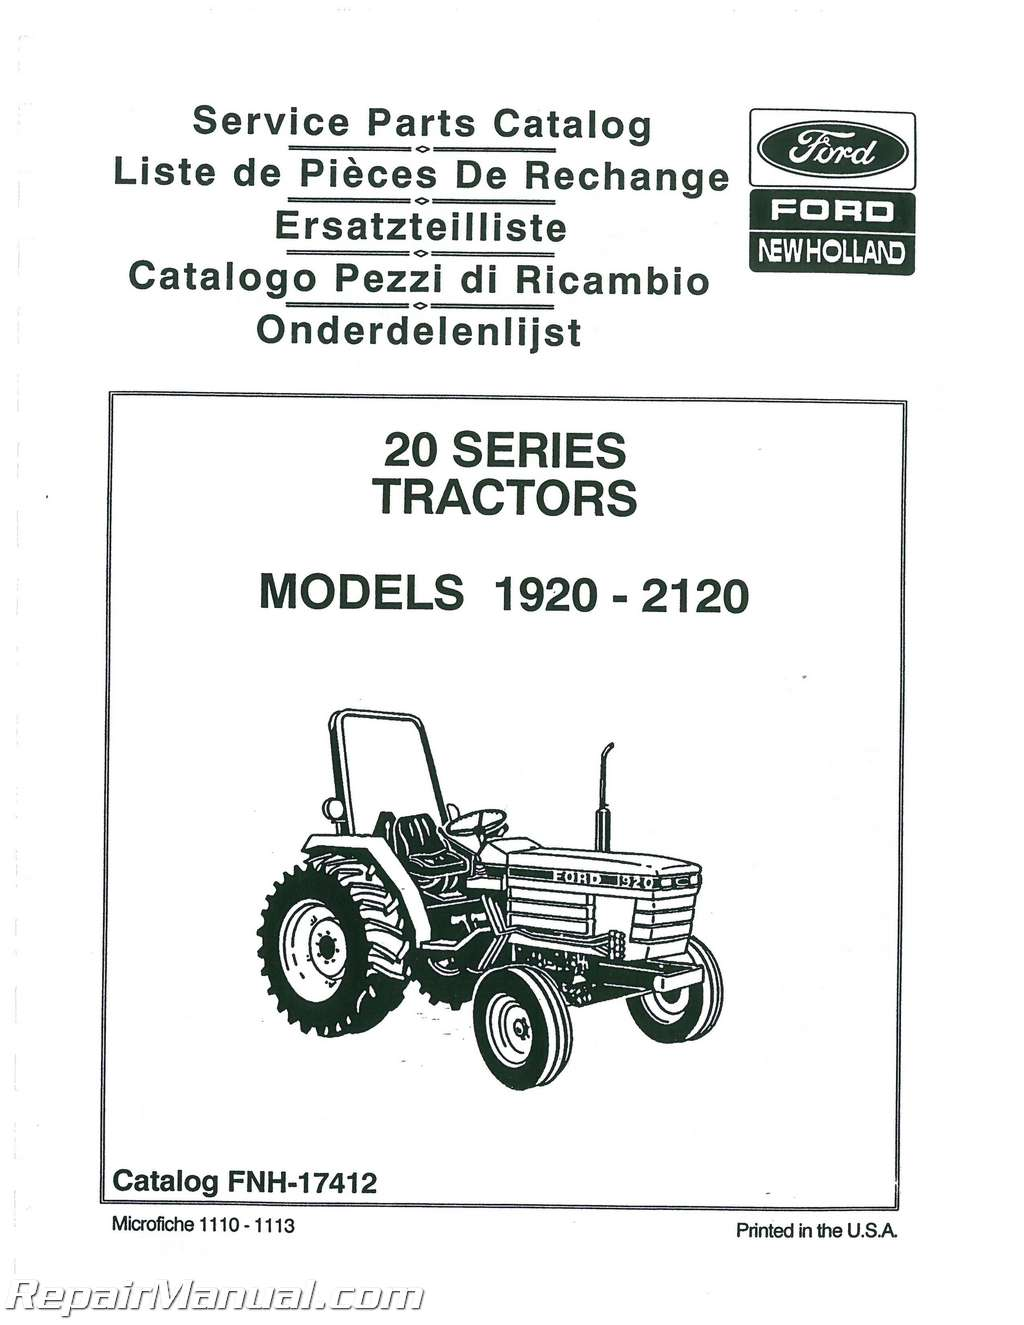 Sensational New Holland Tractor Parts Diagram Moreover New Holland Ford Parts Wiring Cloud Intapioscosaoduqqnet